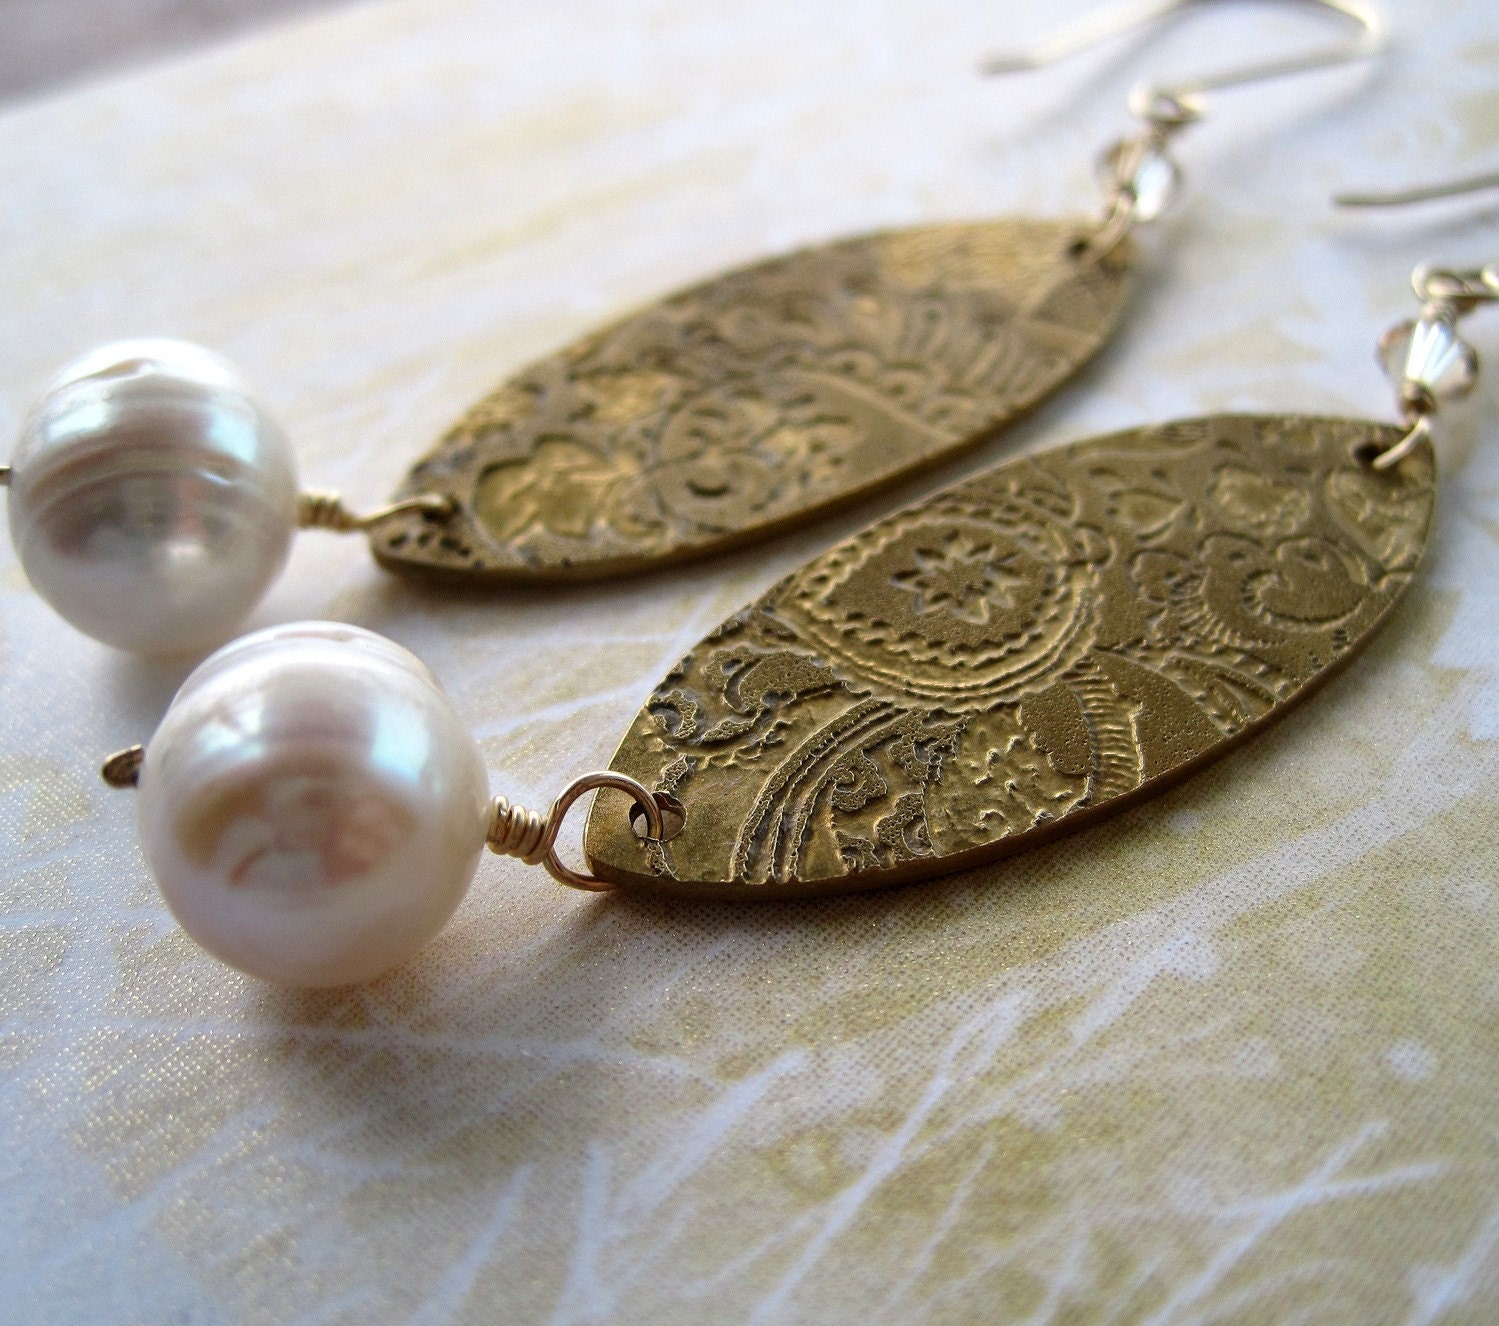 Elegant etched brass and pearl earrings by BrookeJewelry on Etsy from etsy.com